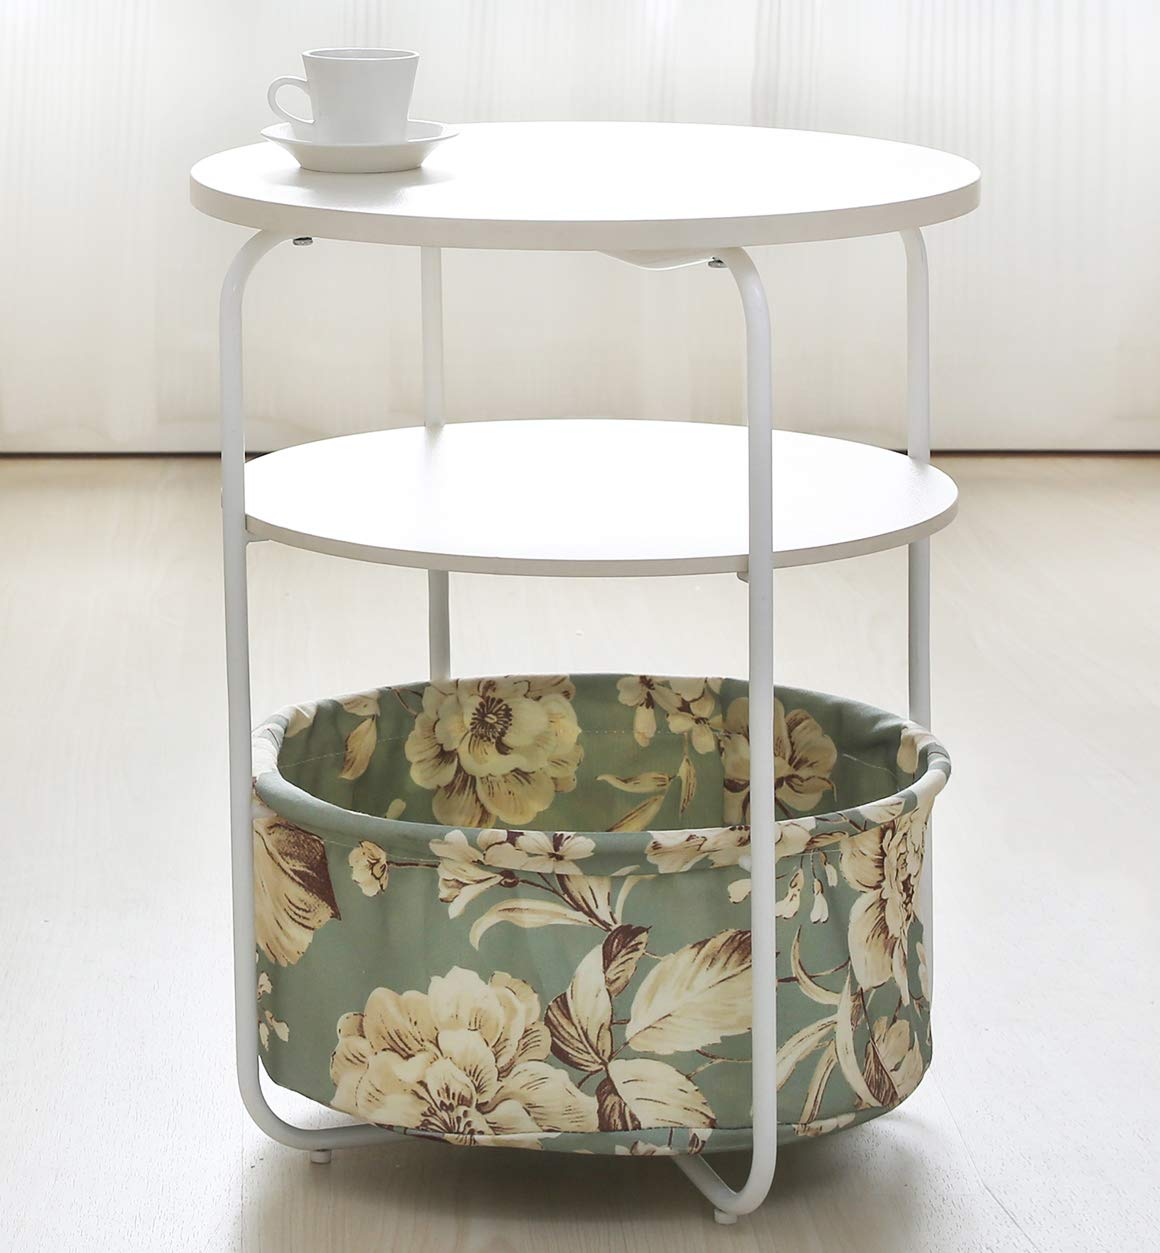 Salafey Round End Tables Bedside Table,3-Tier Sofa Side Table with Cloth Storage Basket Accent Table for Living Room,Bedroom Balcony Home and Office